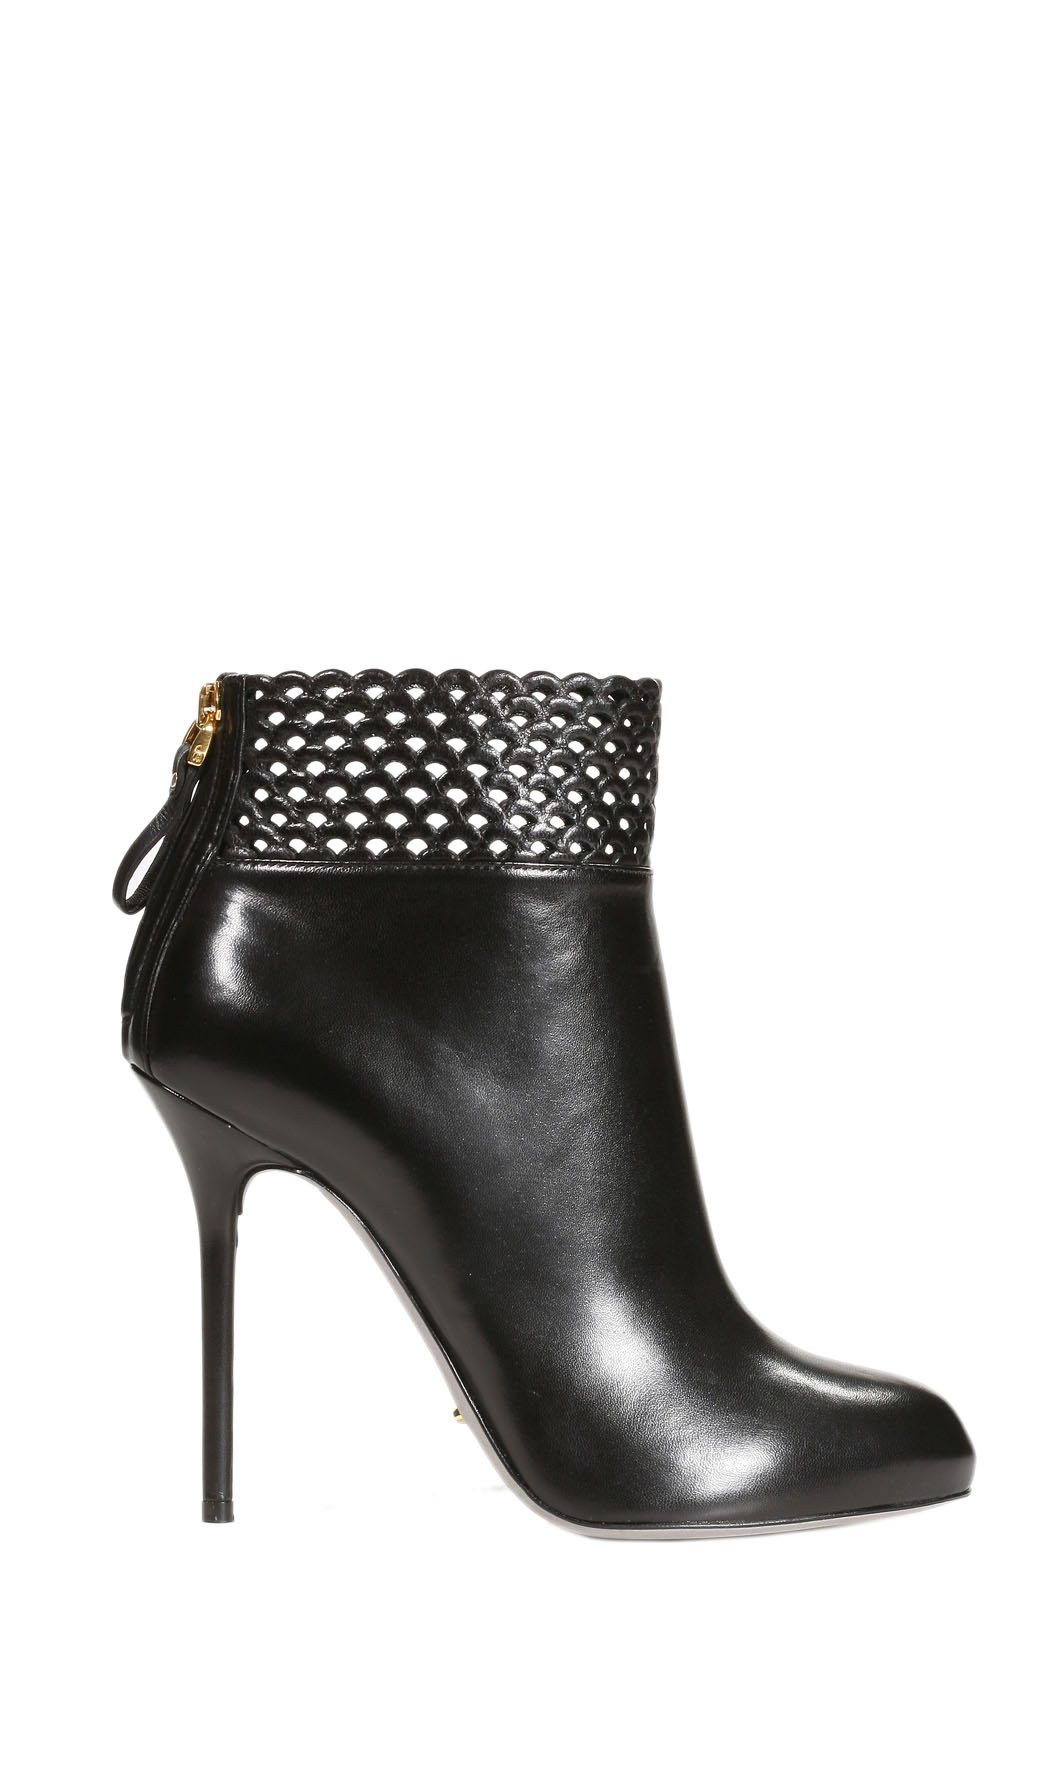 Sergio Rossi Shoes Macramade Ankle Boots Leather Ajour In